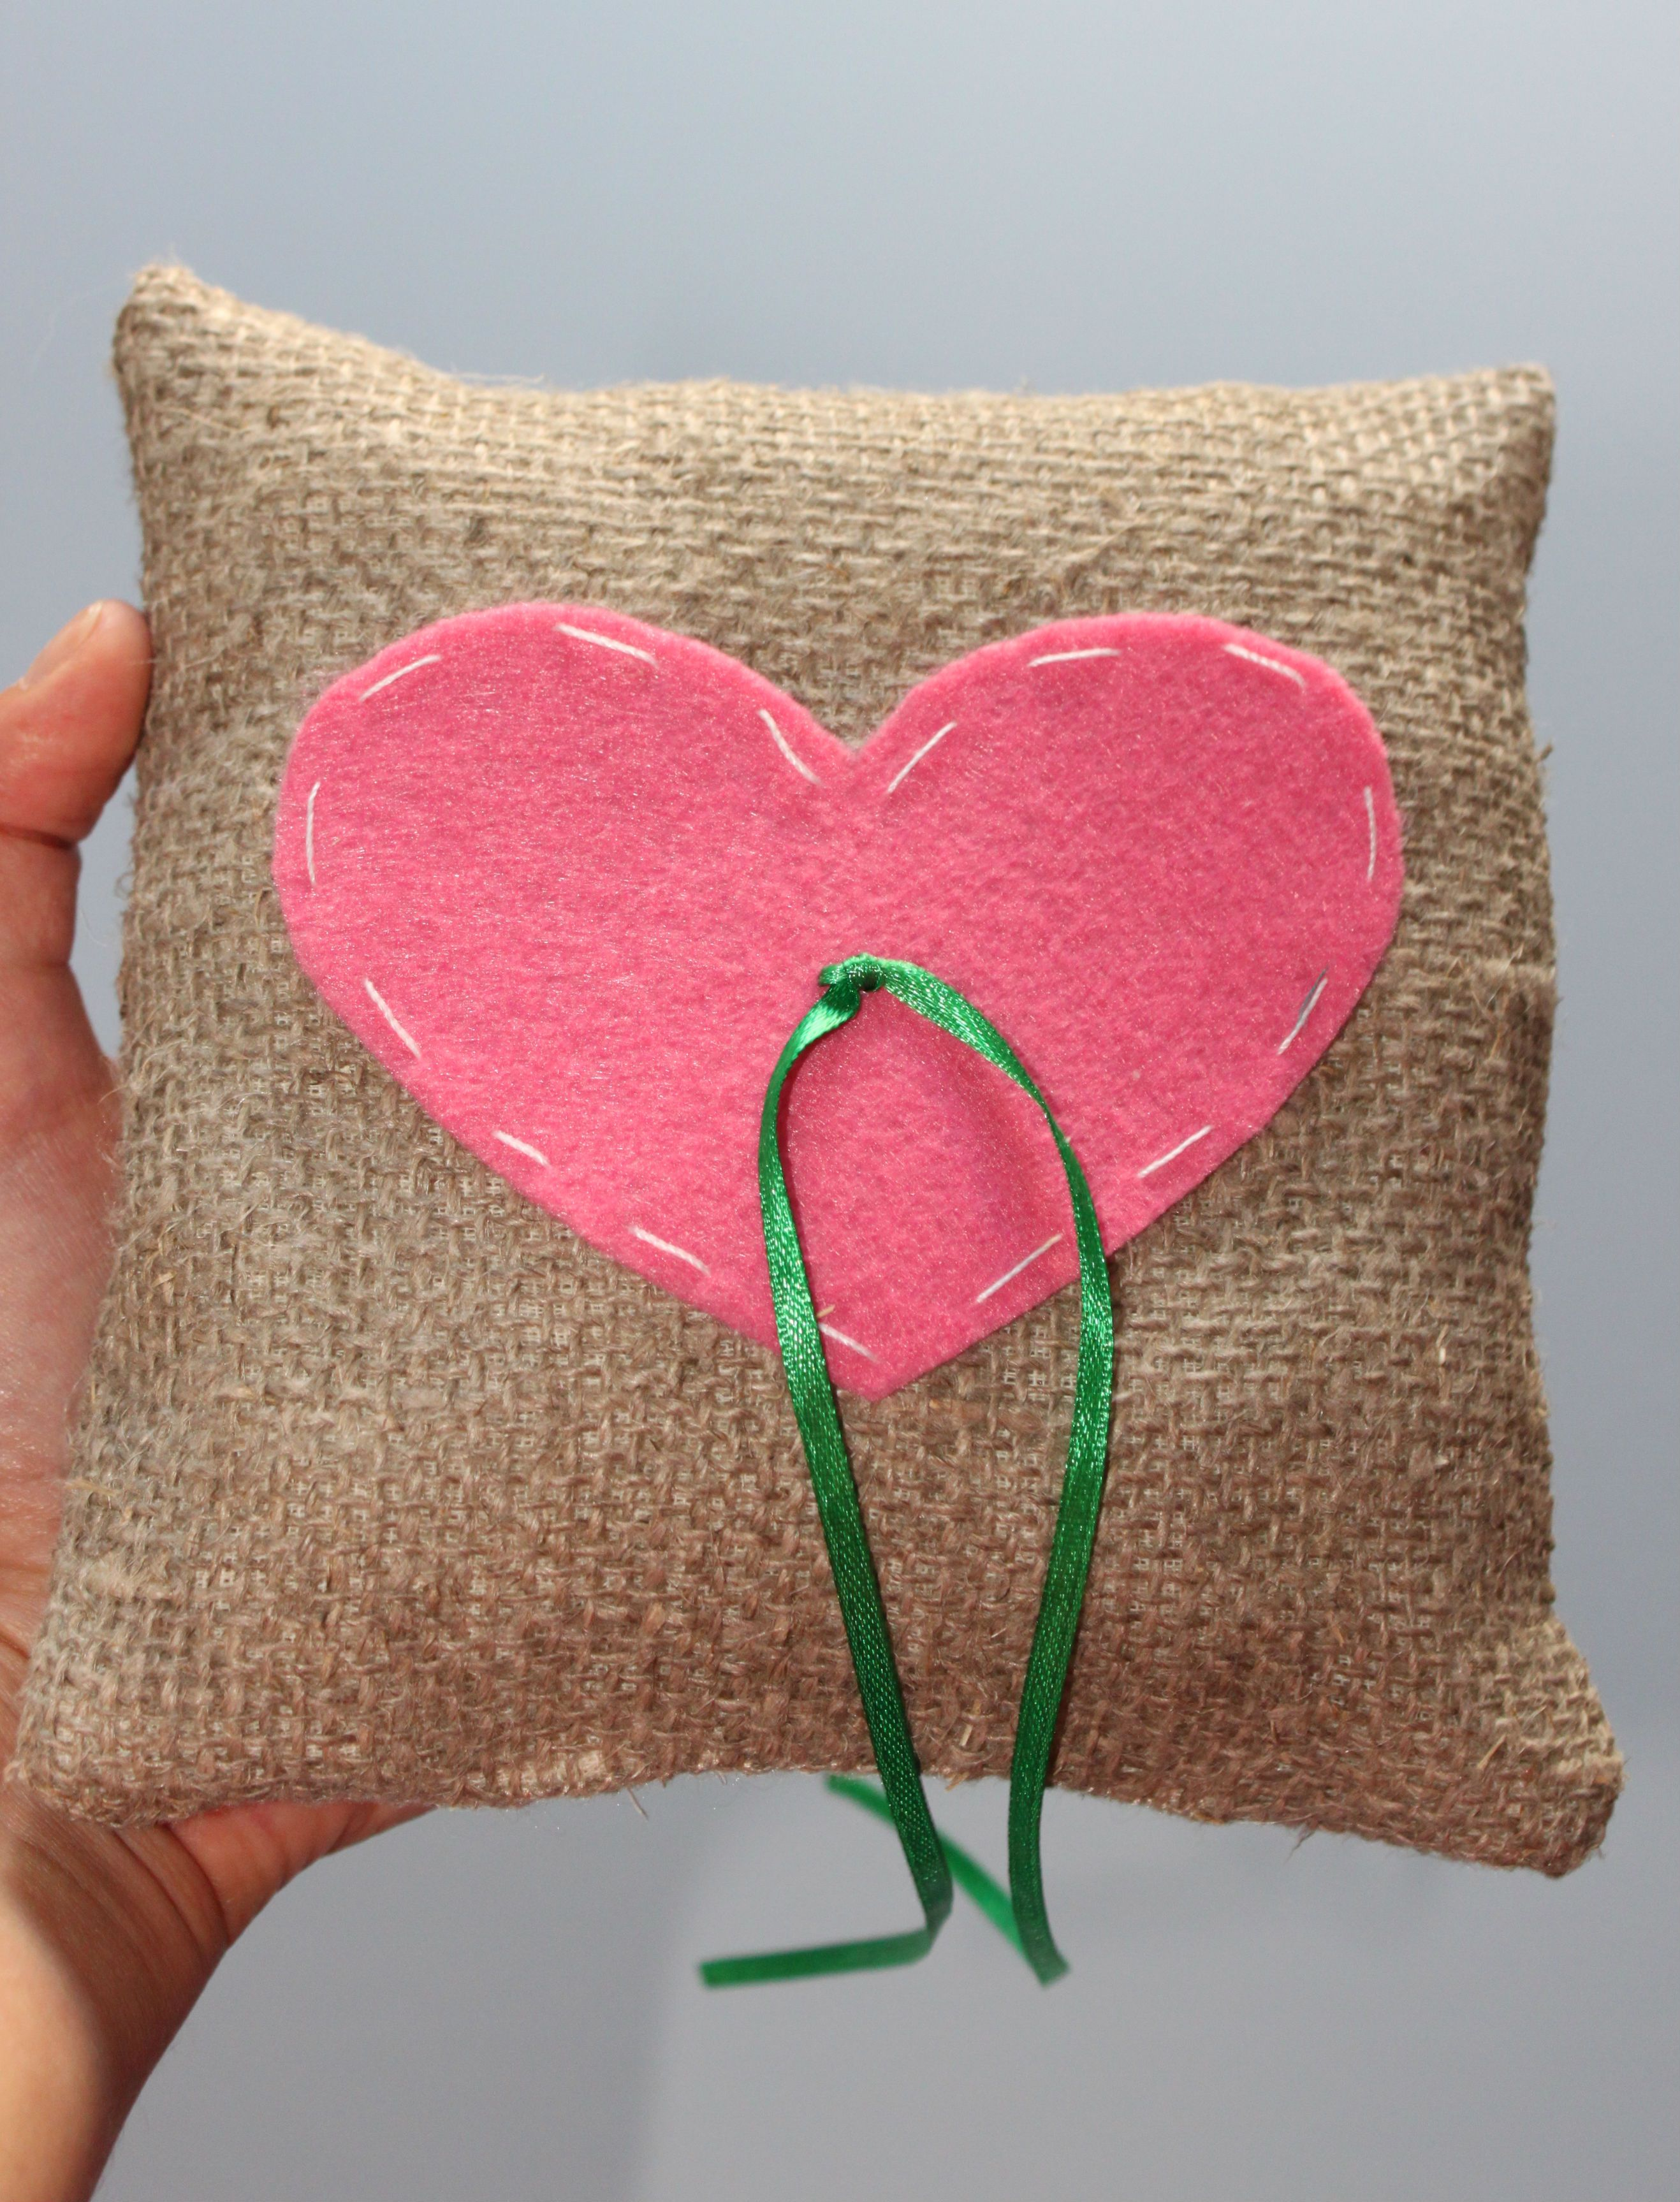 Wedding ring pillow with heart | Handmade decorative pillow covers ...